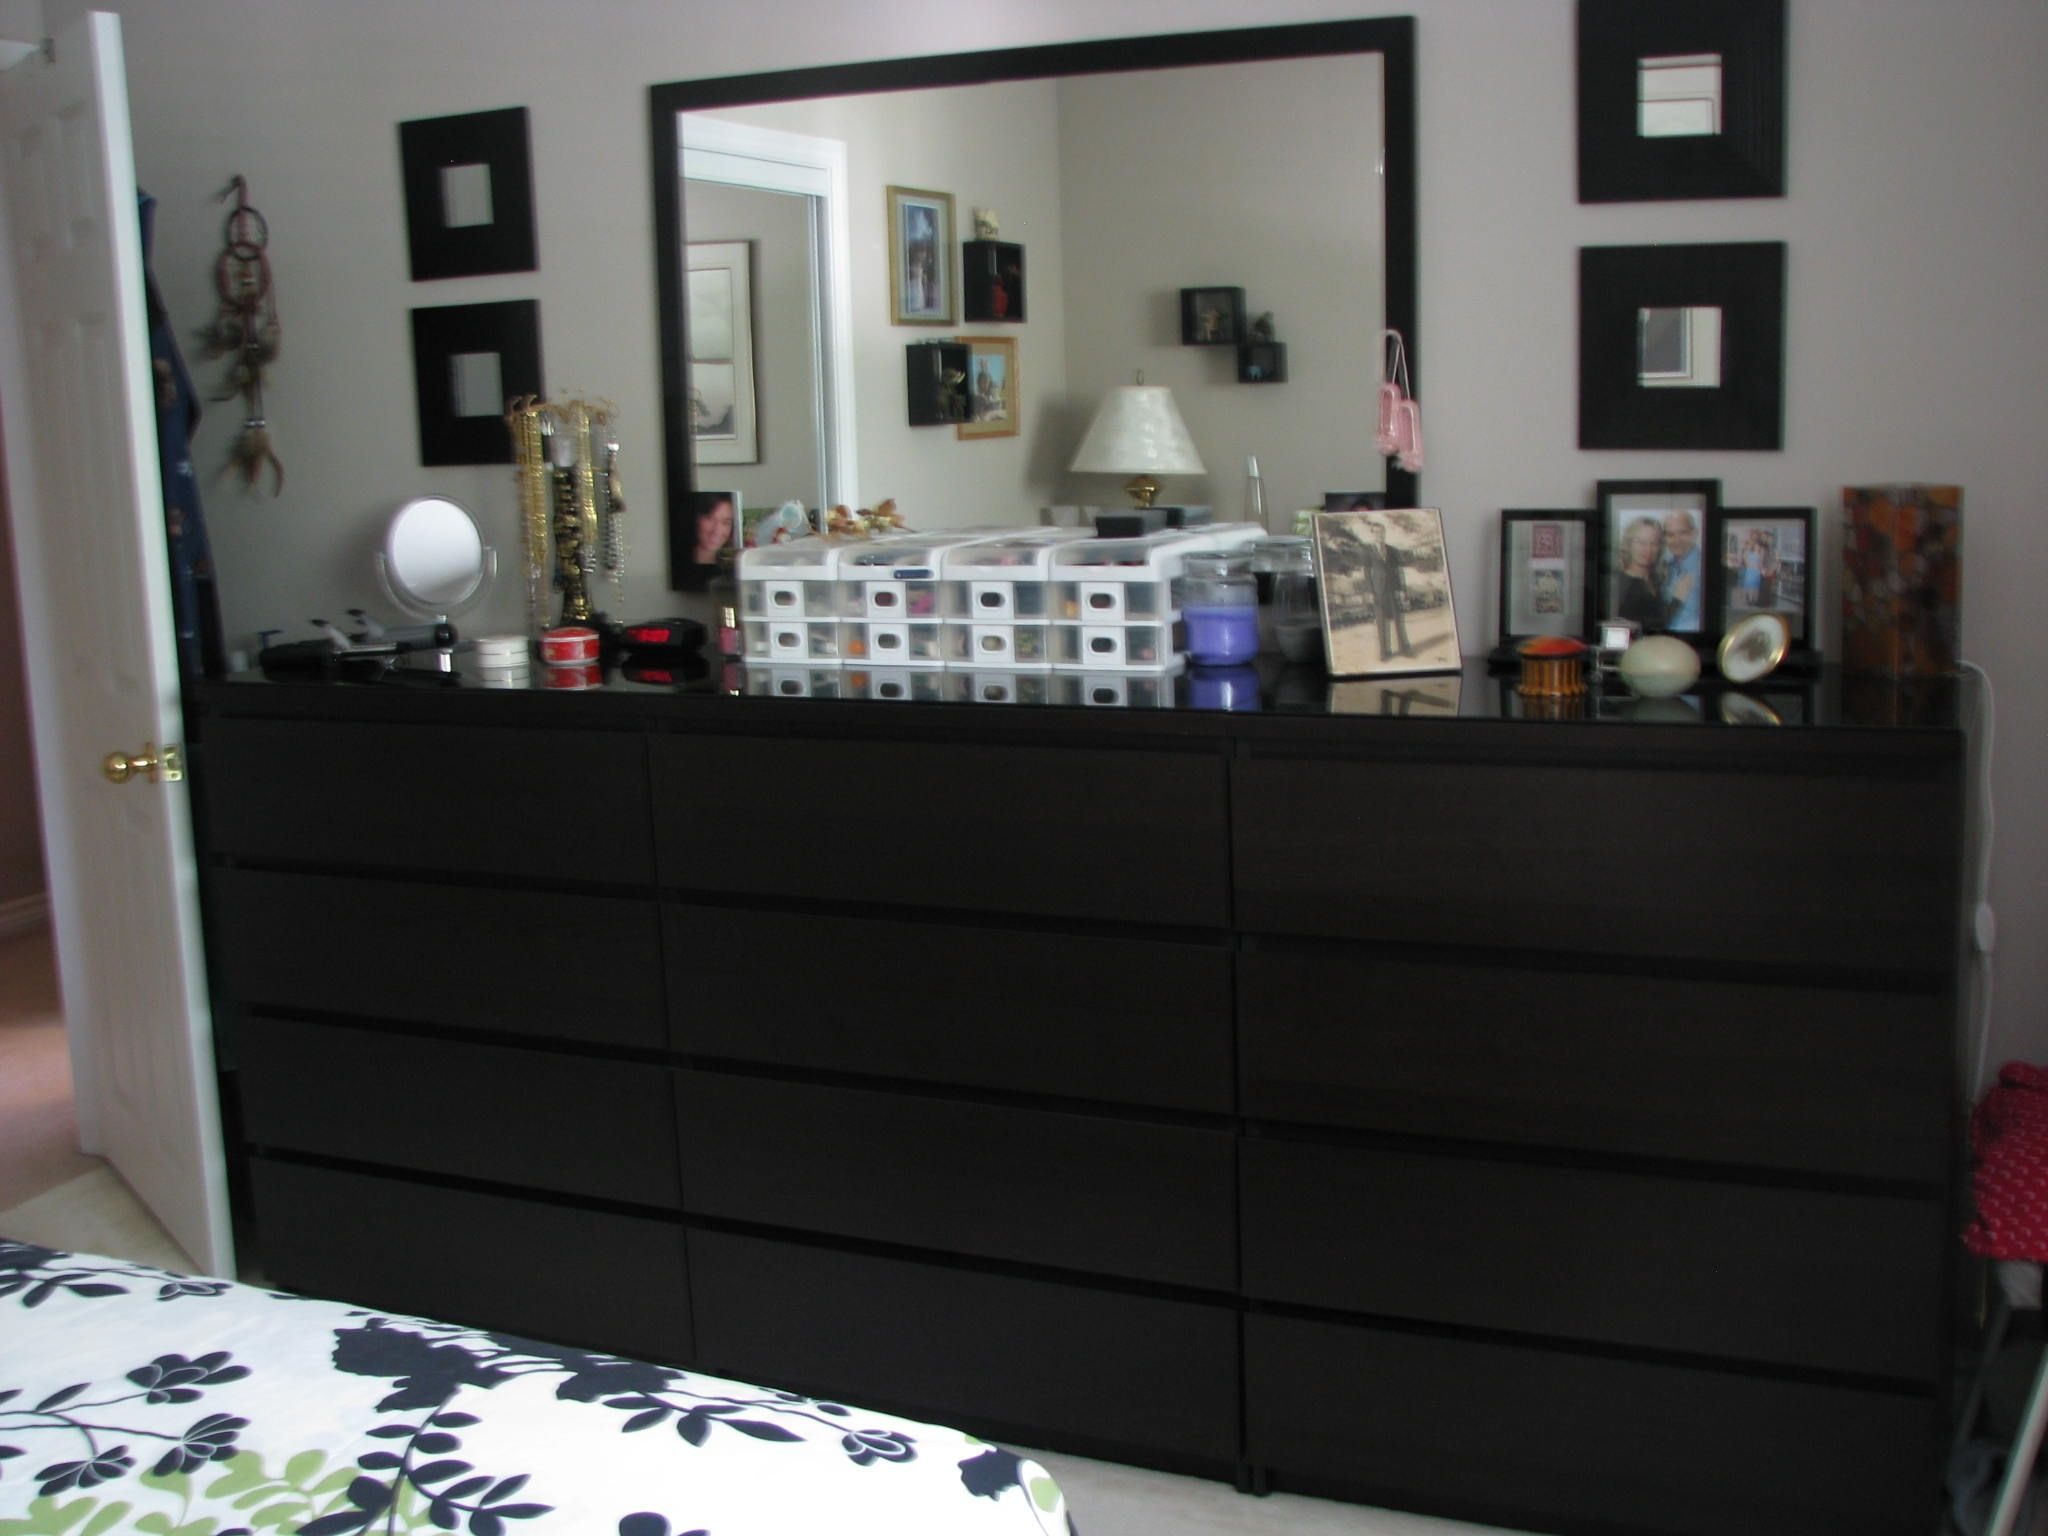 Ikea Is Not So Bad 3 X 4 Drawer Malm Dressers In Brown